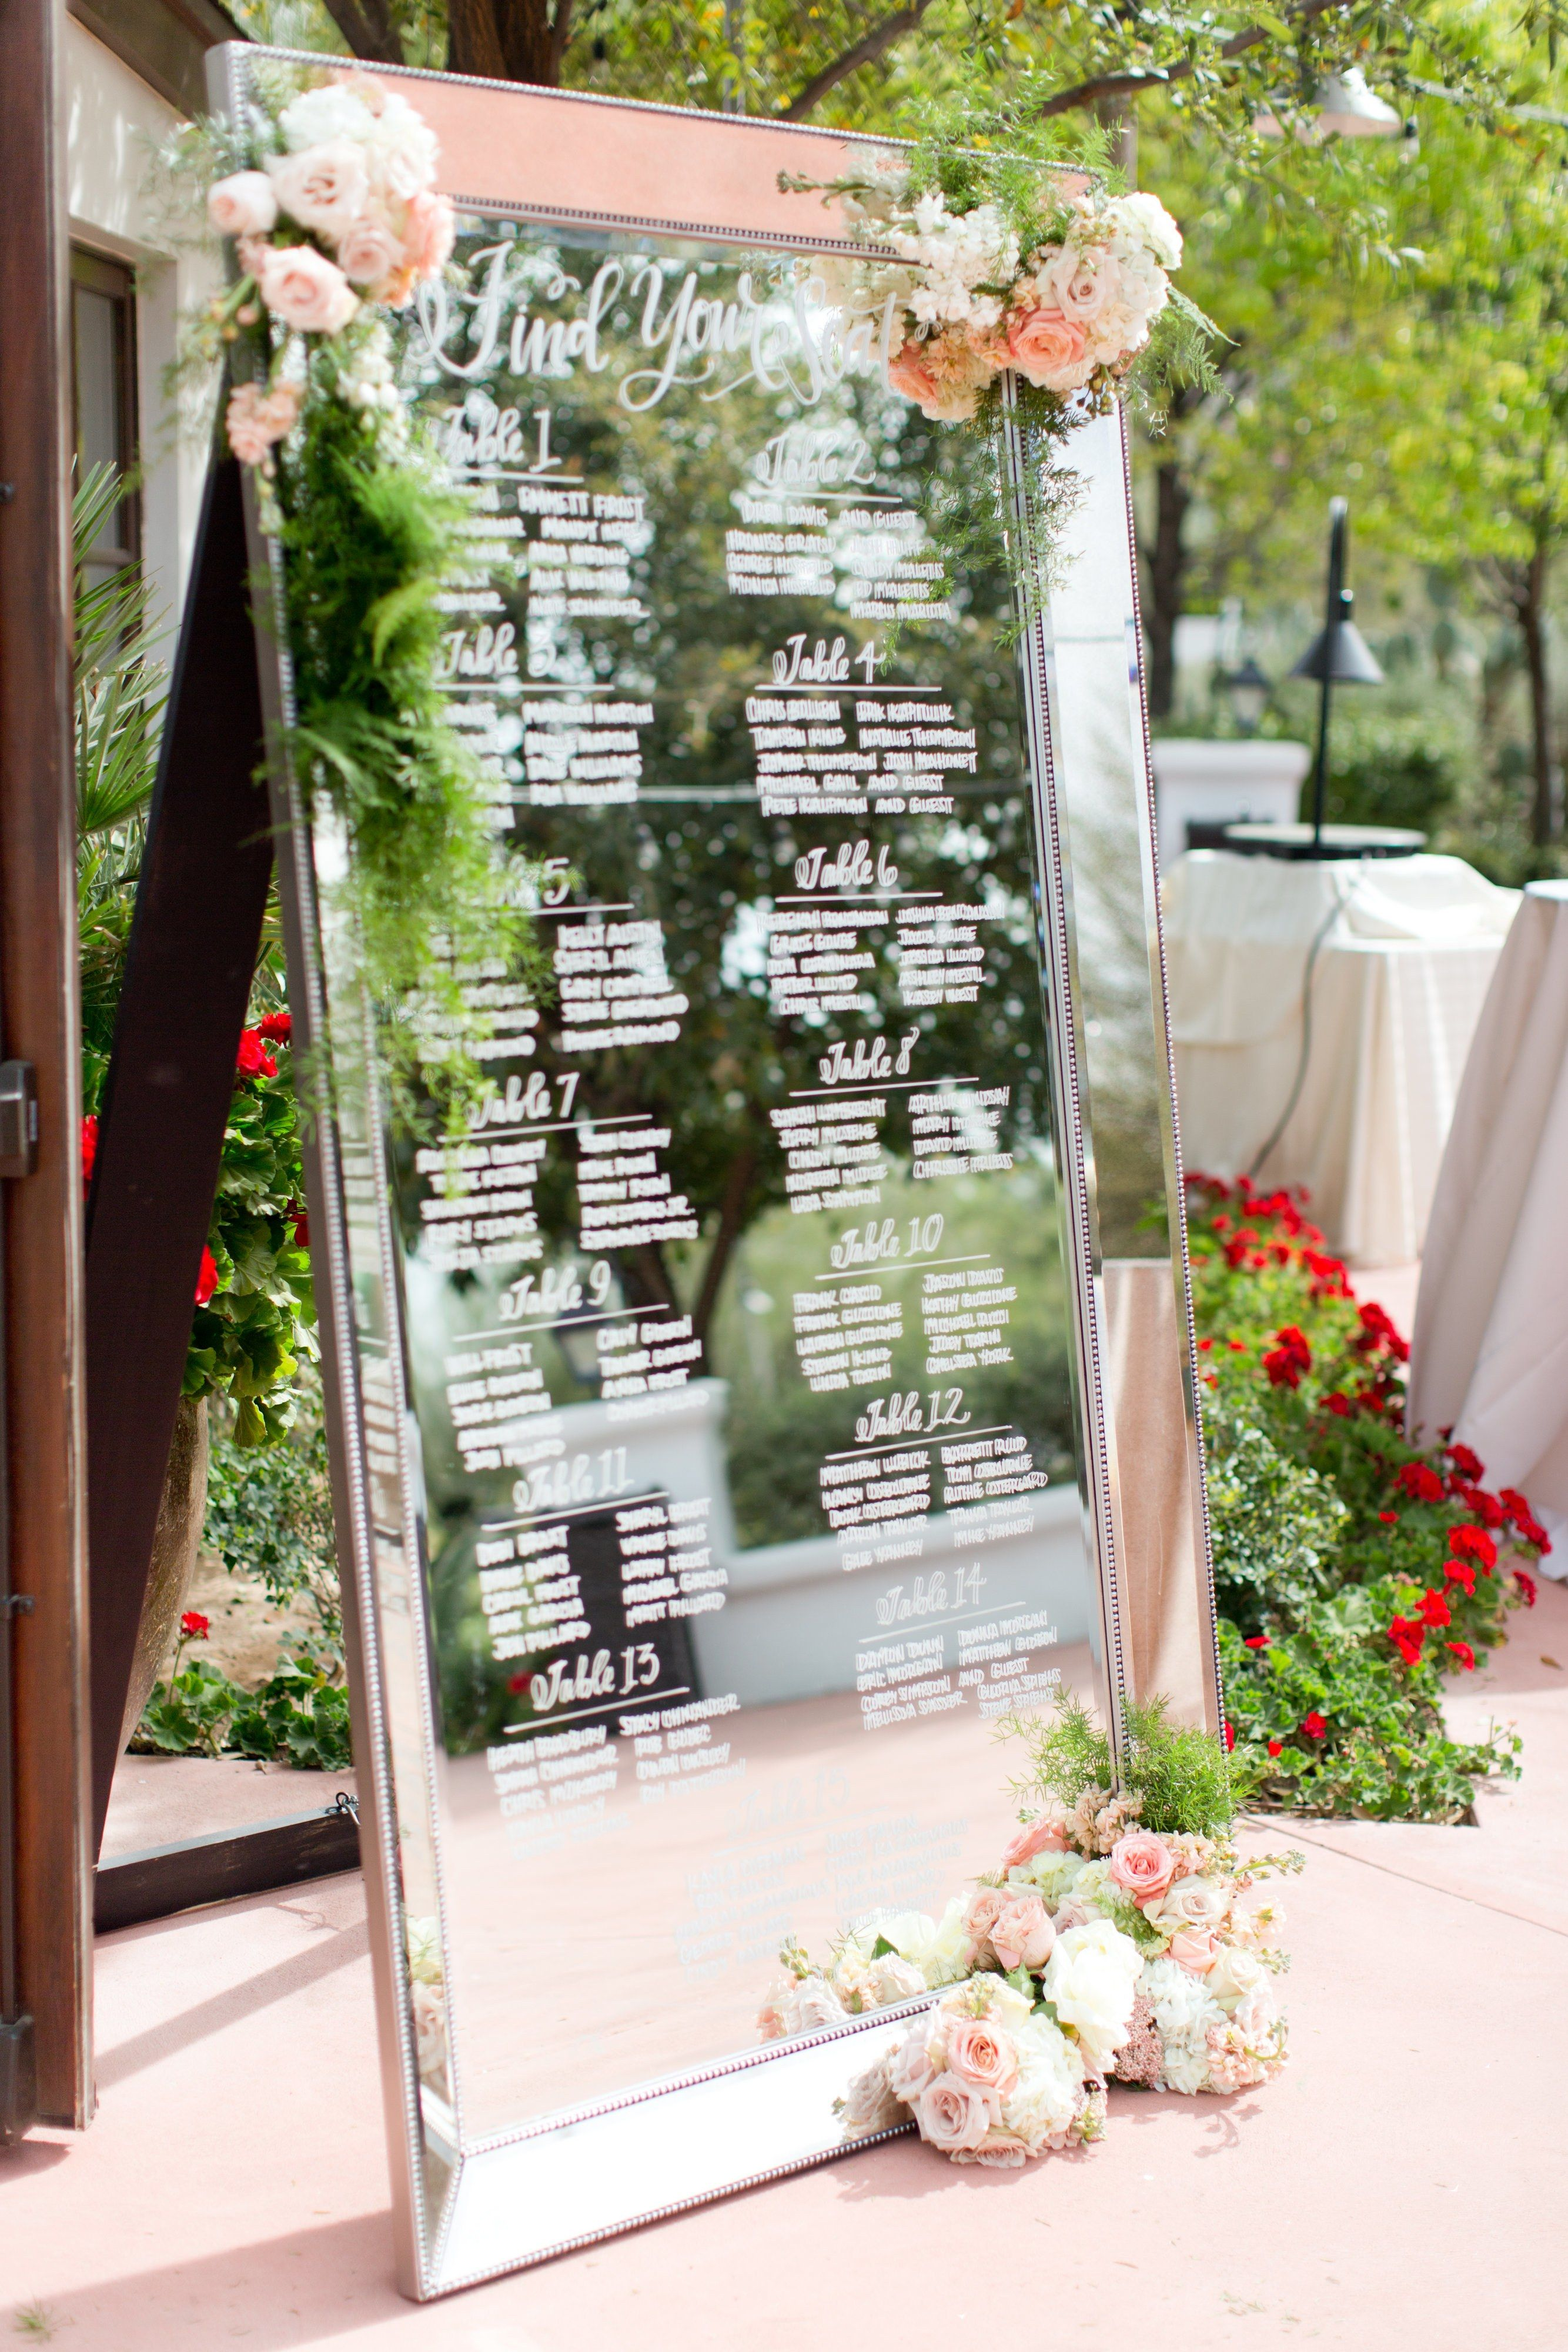 Wedding Mirror Signs Aren T Going Anywhere Here Are 11 We Love Wedding Mirror Seating Chart Wedding Rustic Wedding Signs Diy